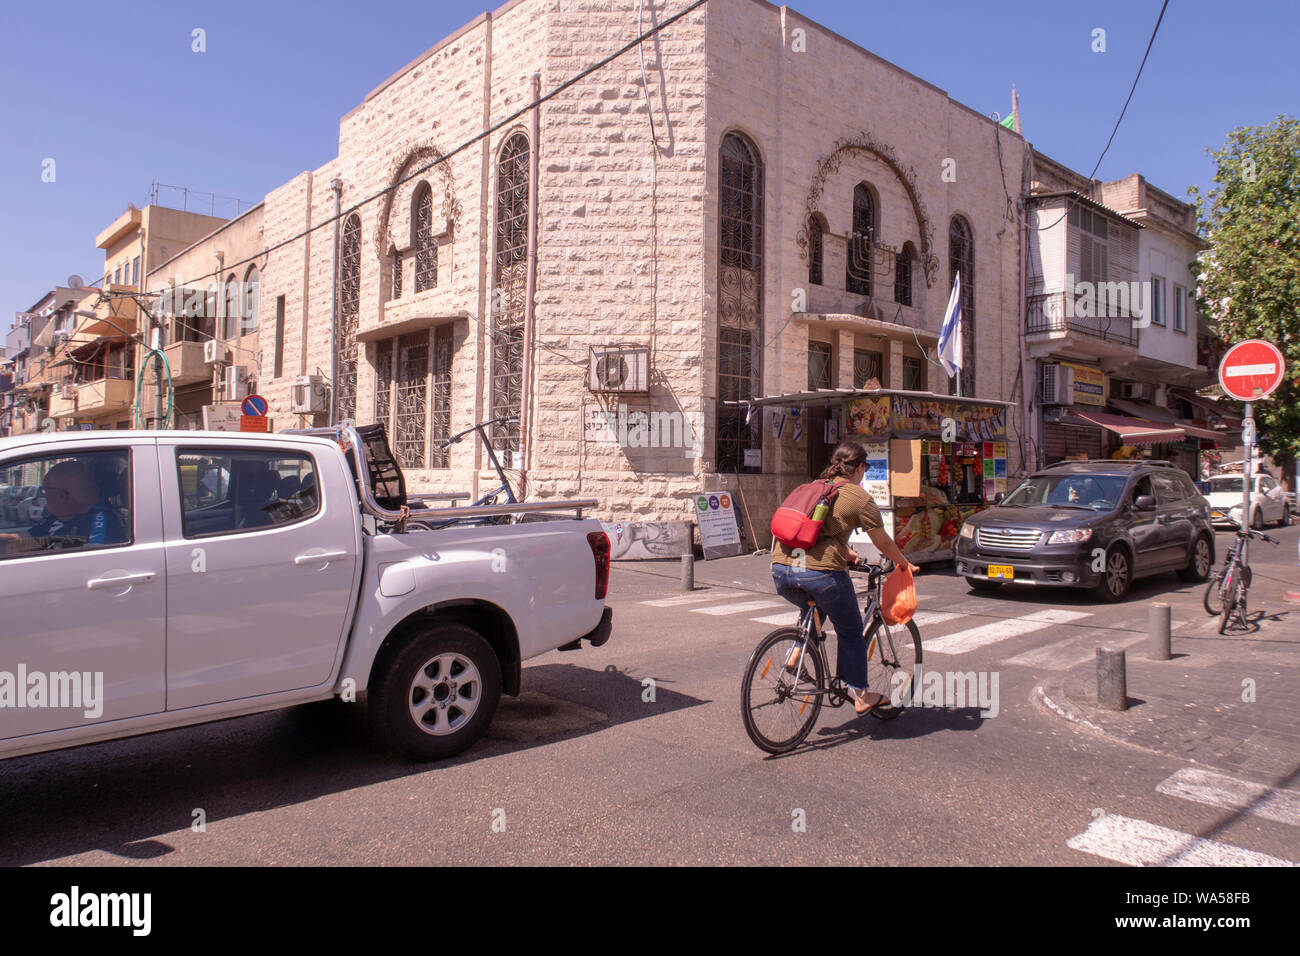 neighborhood of Florentin in southern Tel Aviv. Stock Photo